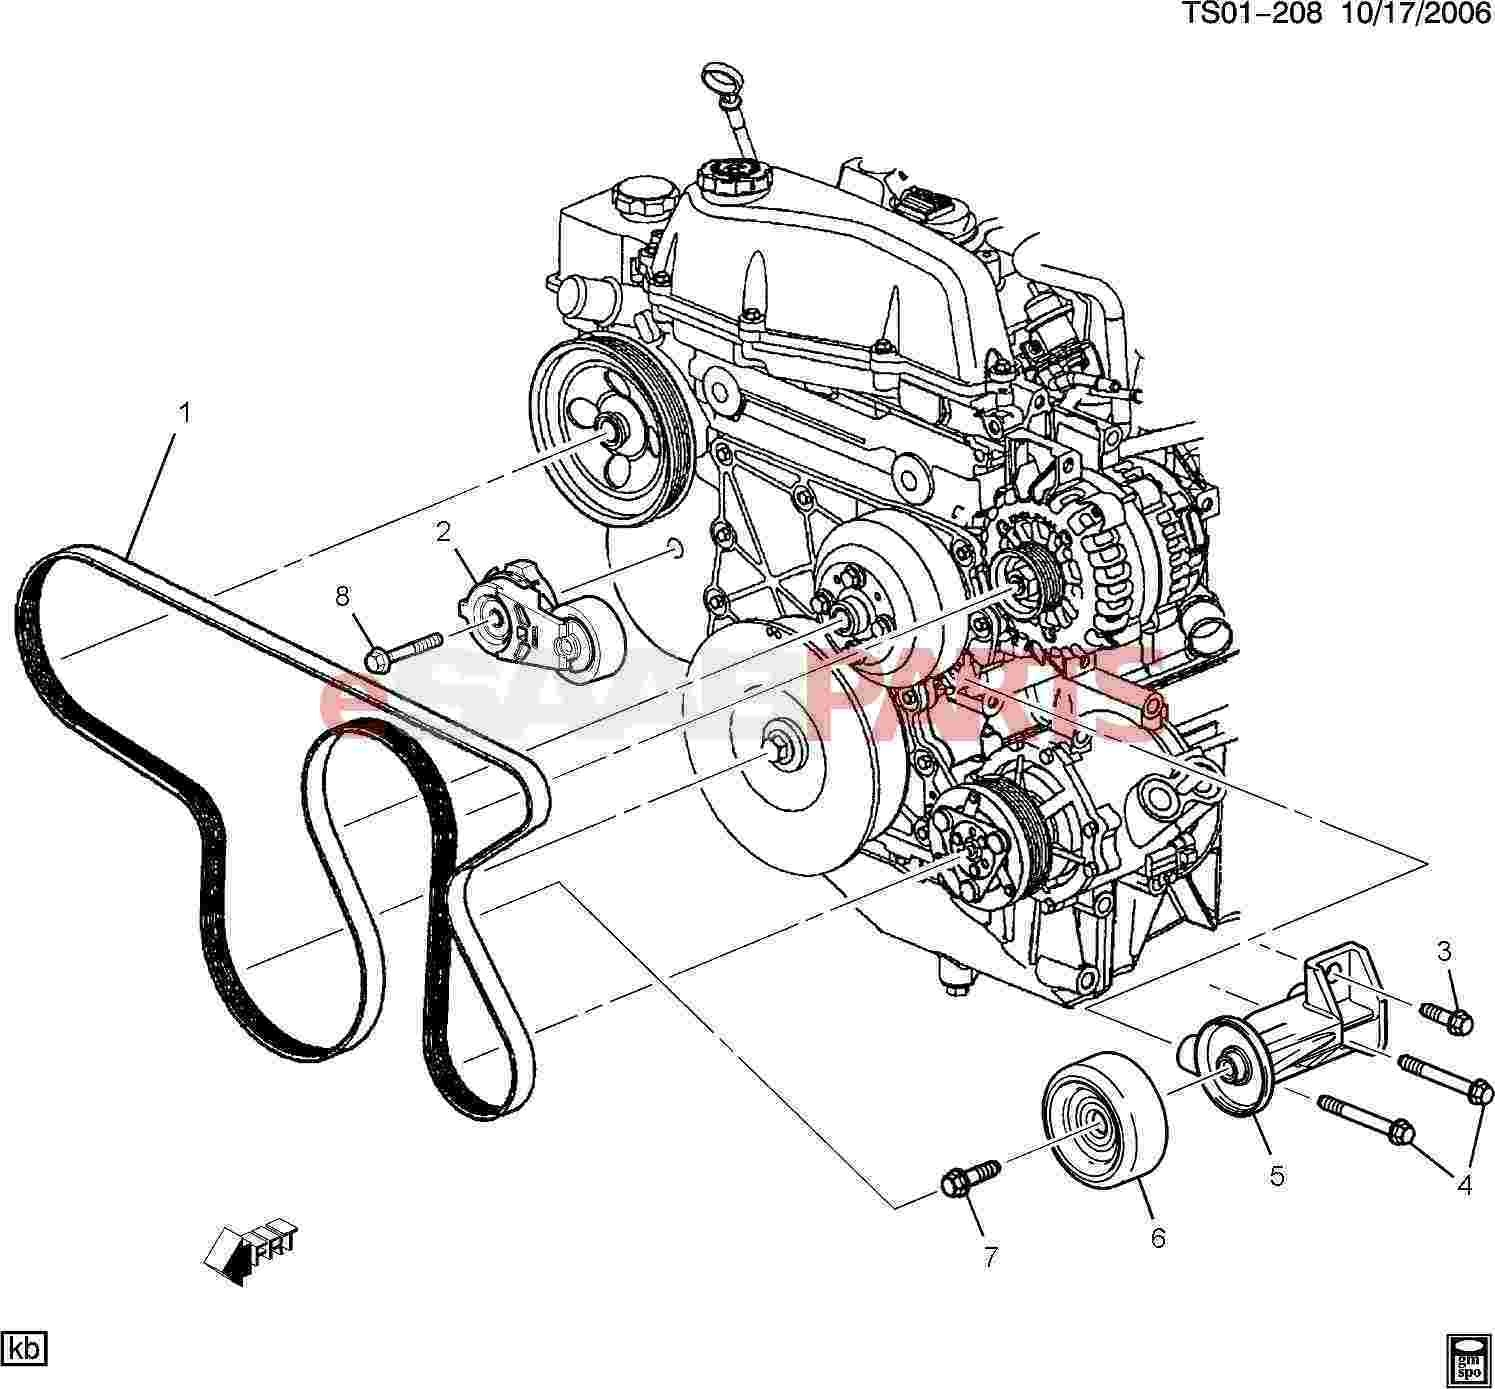 hight resolution of 2008 envoy engine diagram oil system wiring diagrams konsult 2005 gmc envoy engine diagram wiring diagram